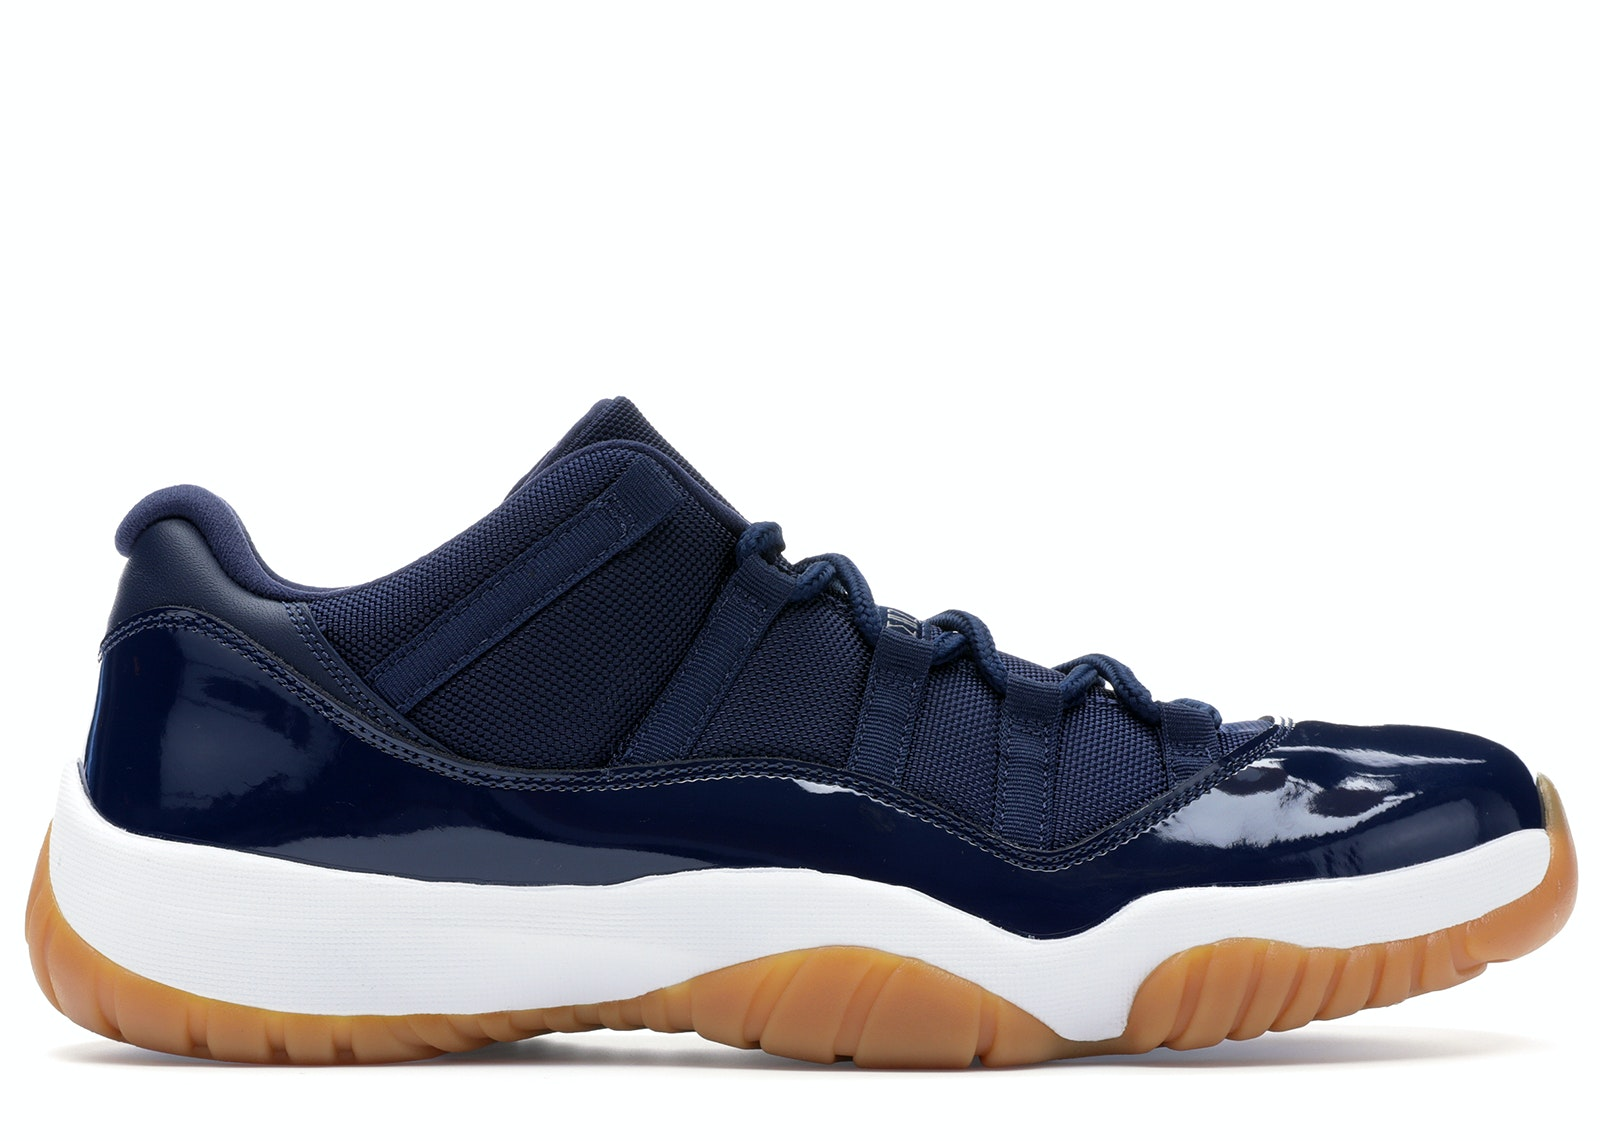 Jordan 11 Retro Low Midnight Navy